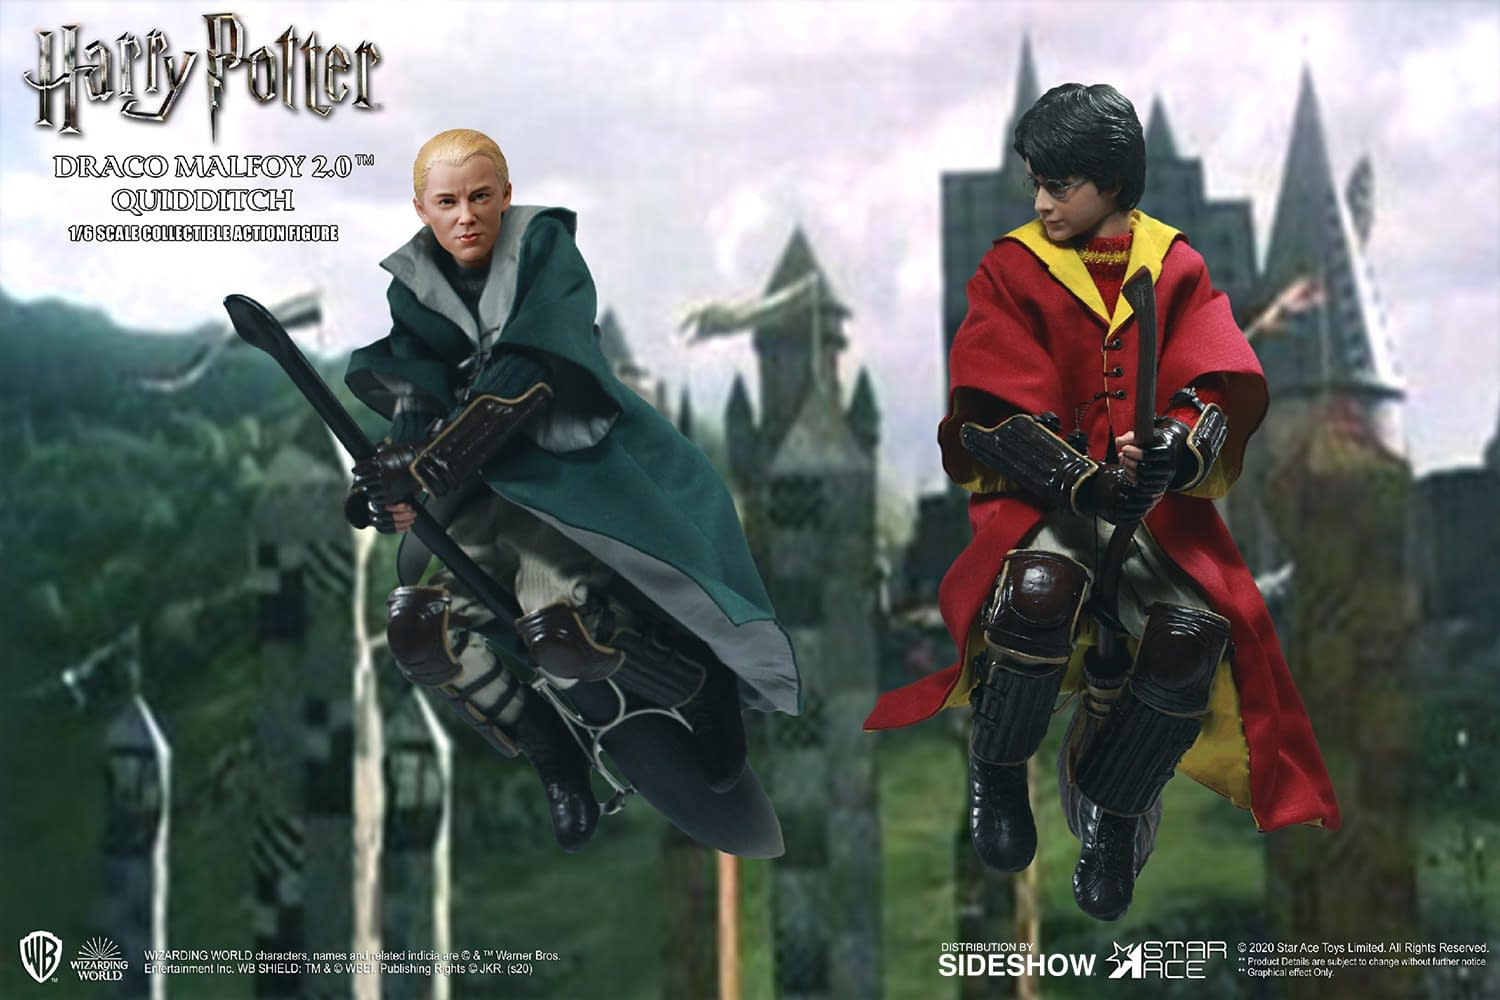 harry-potter-draco-malfoy-20-quidditch-twin-pack_harry-potter_gallery_5e83b21877bca